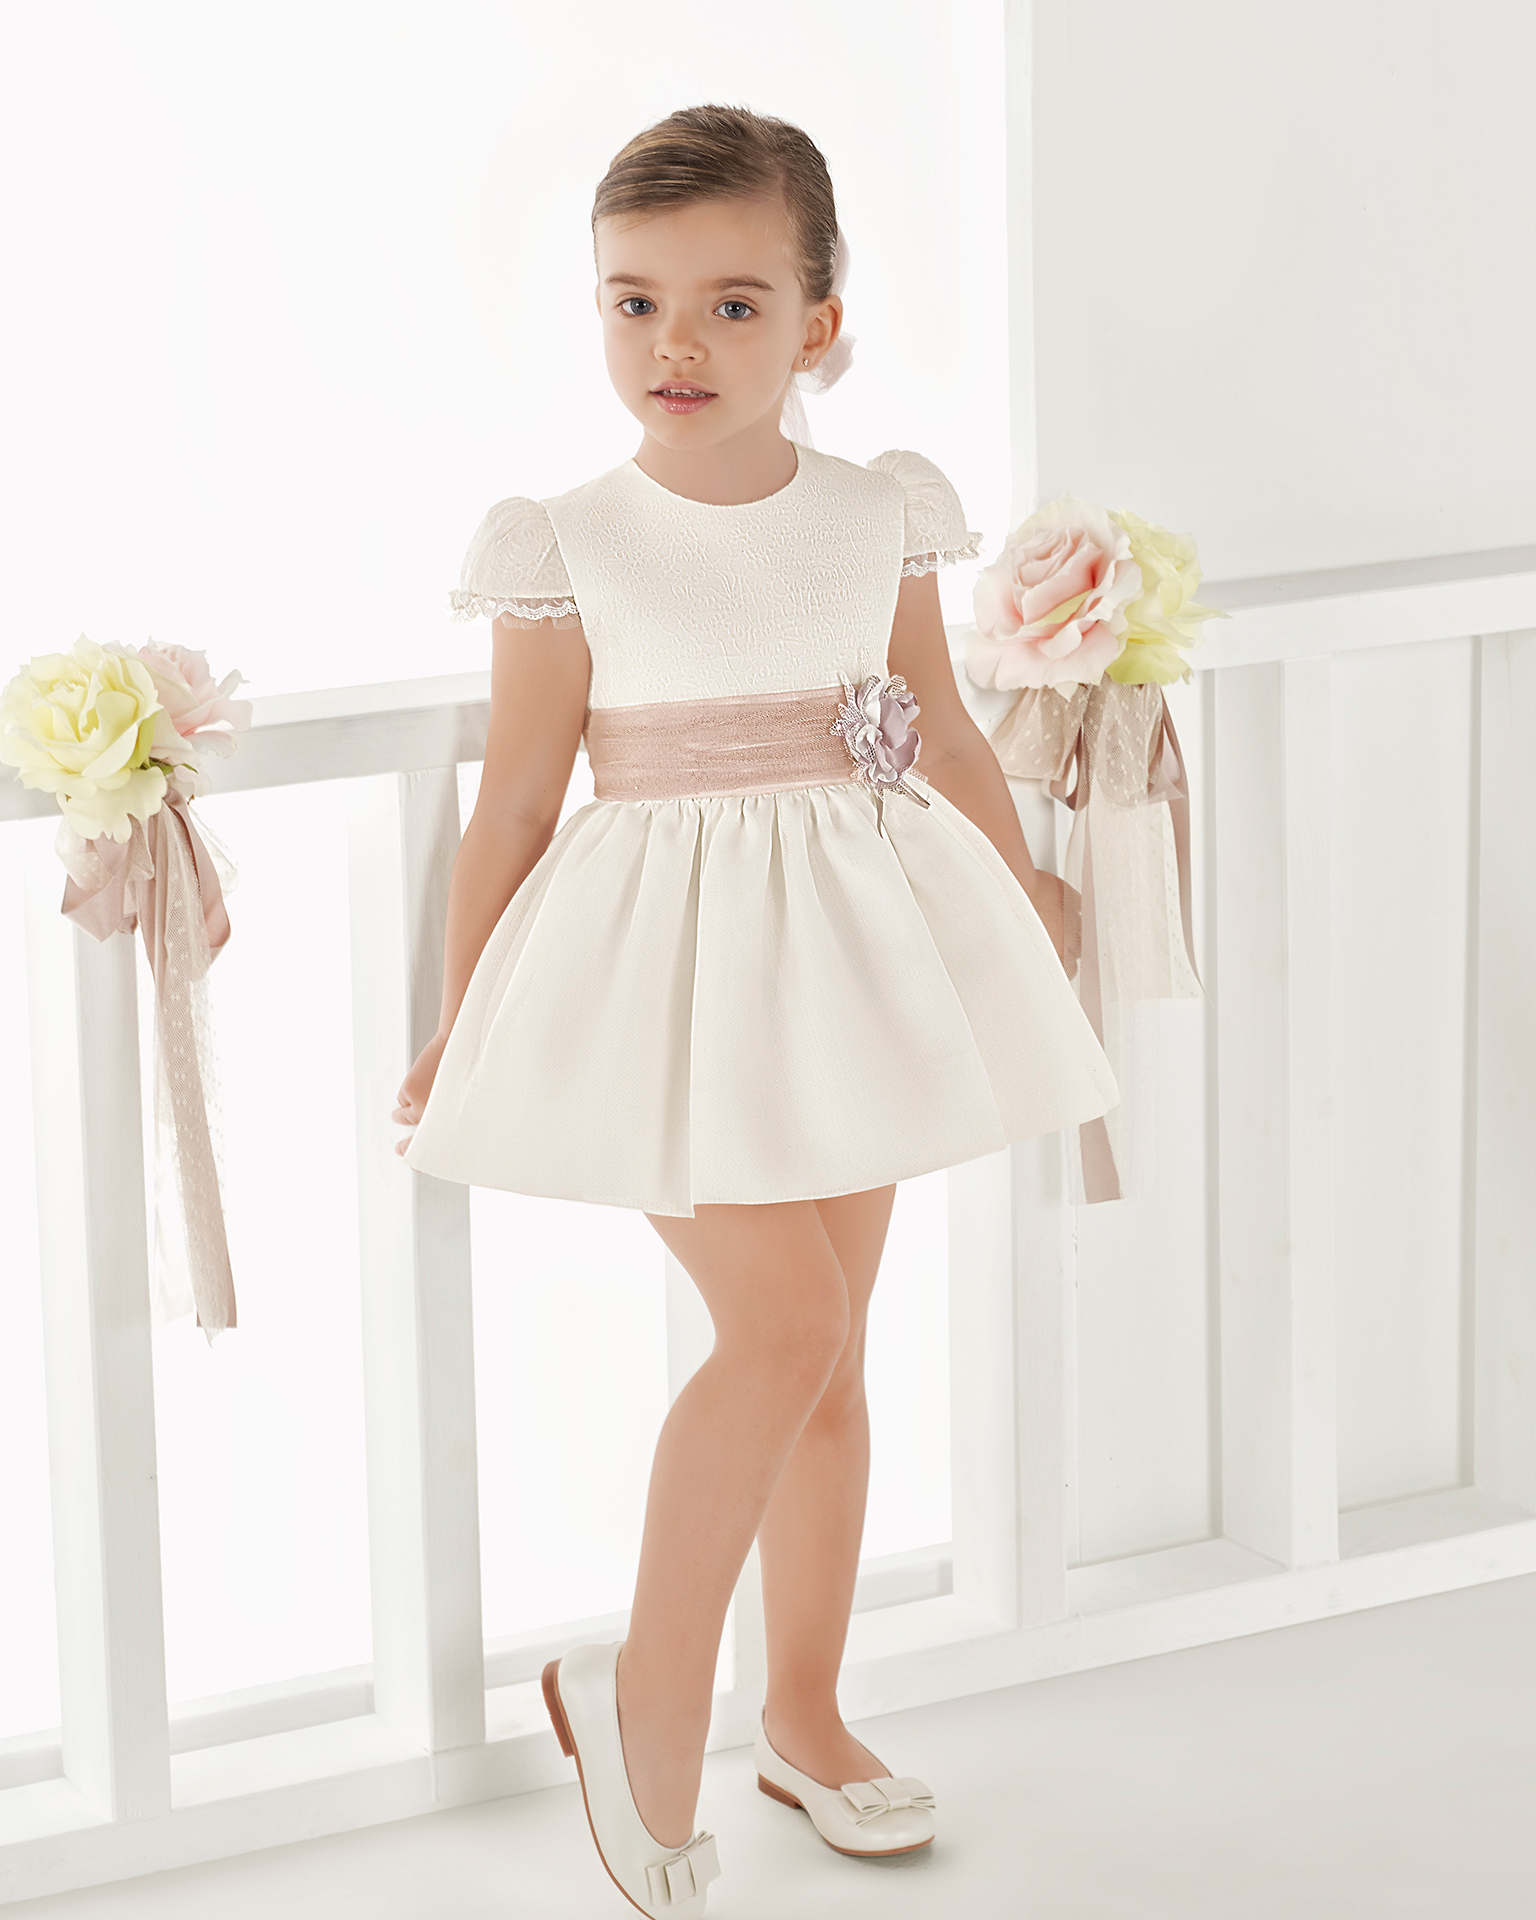 Ballgown-style striped First Communion or bridesmaid's dress, in natural. 2018 AIRE COMUNION Collection.